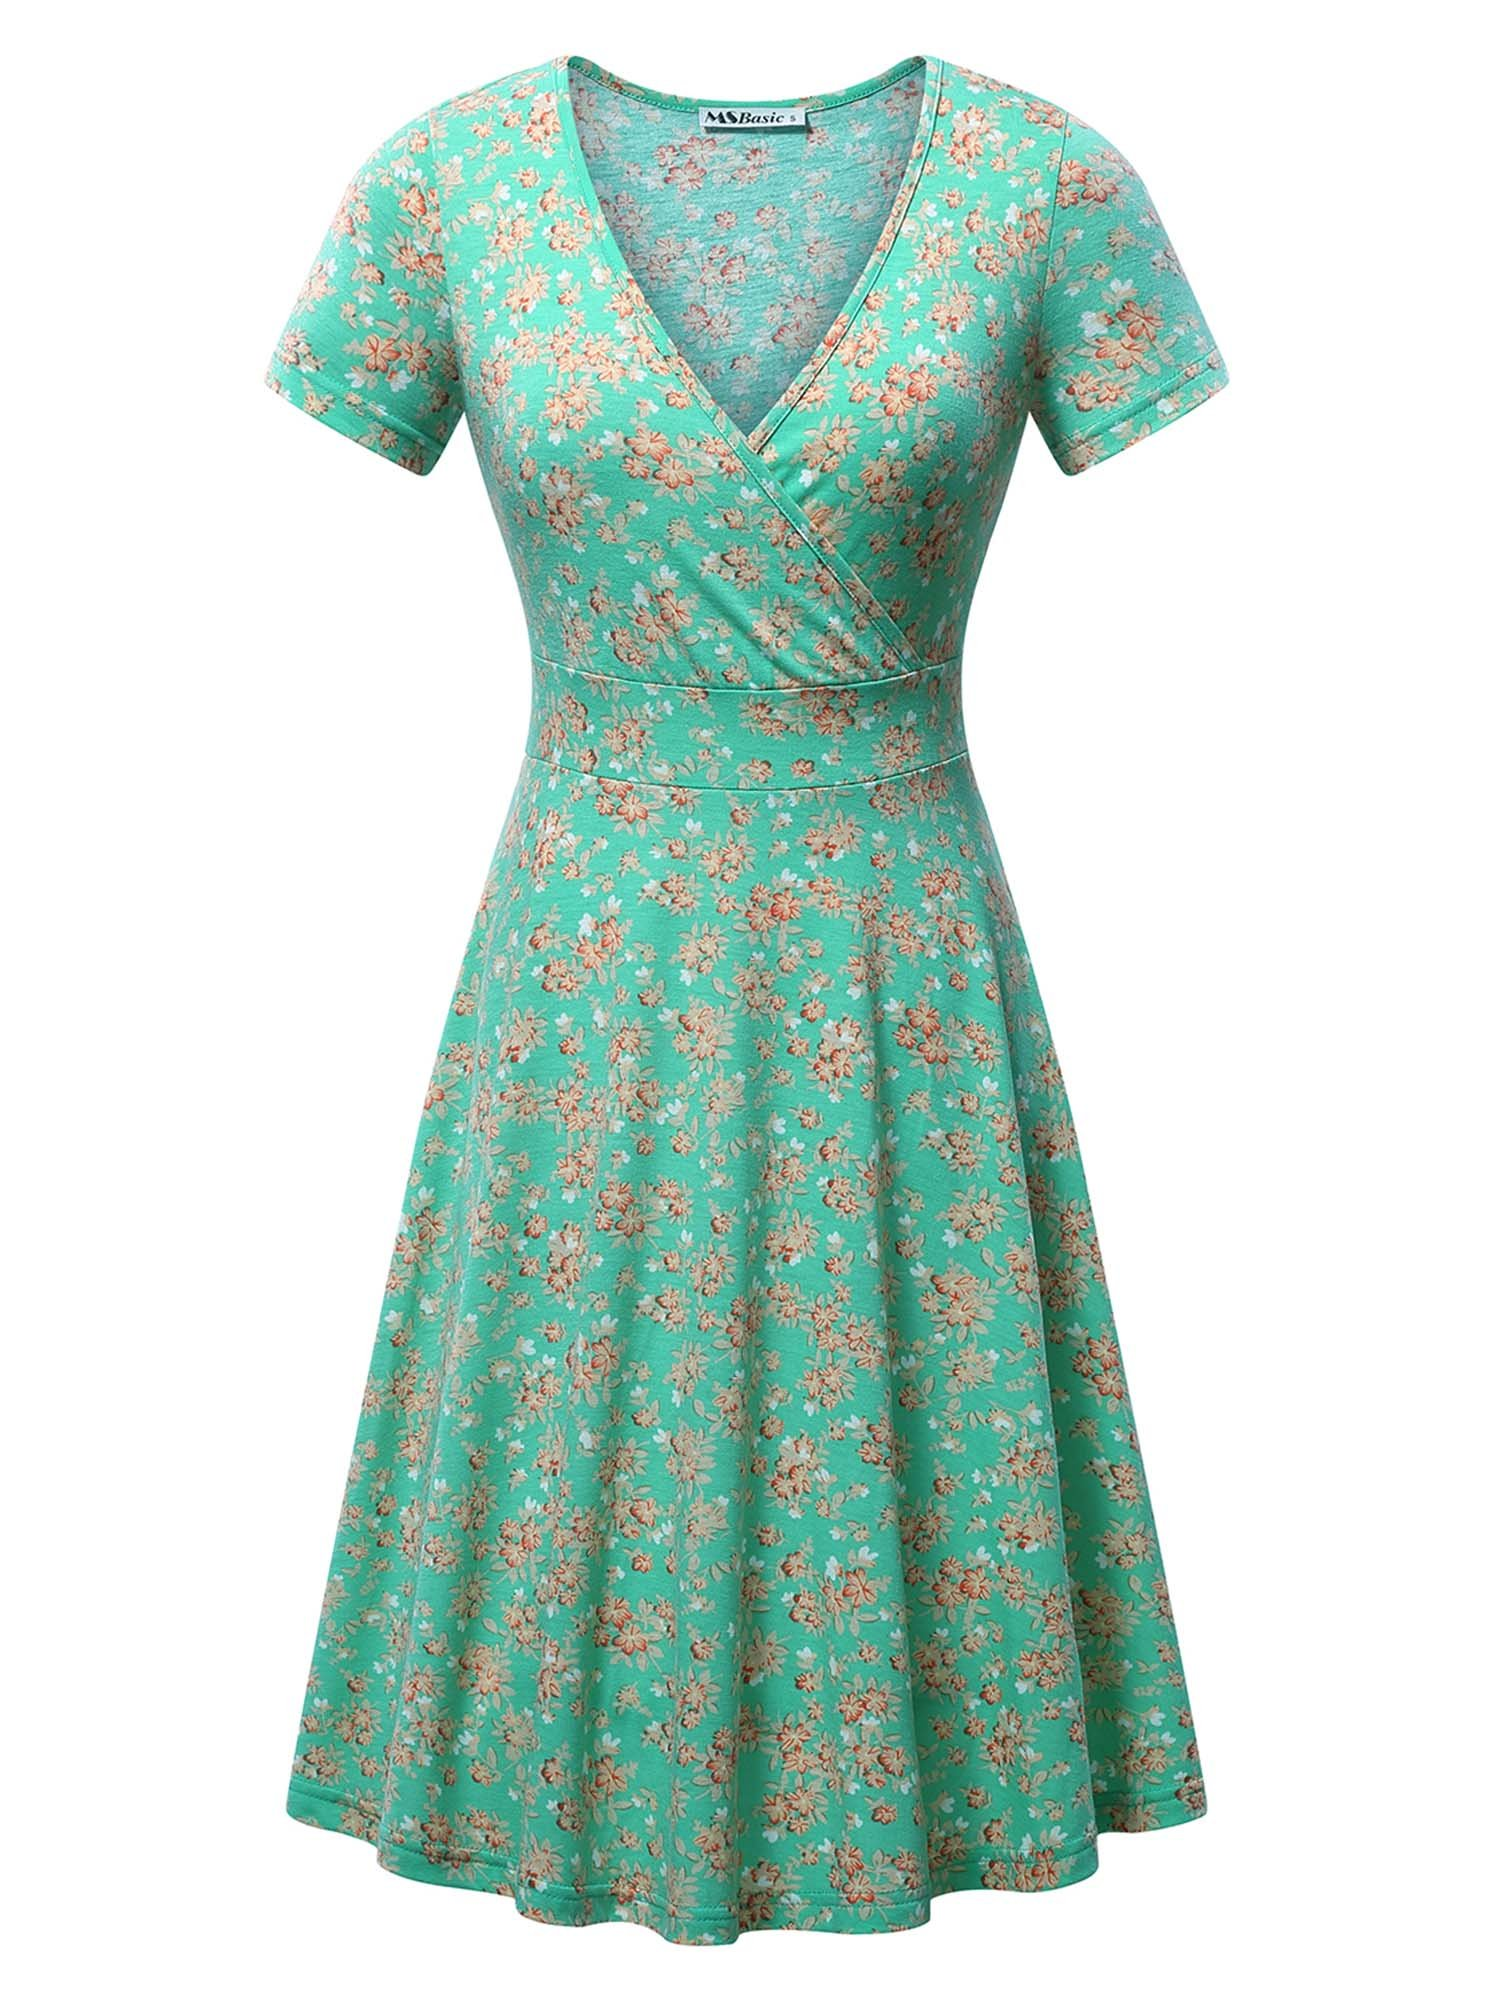 MSBASIC Dress for Women Party, Casual V Neck A line Short Sleeve Flare Green Vintage Midi Dress Medium Floral-1